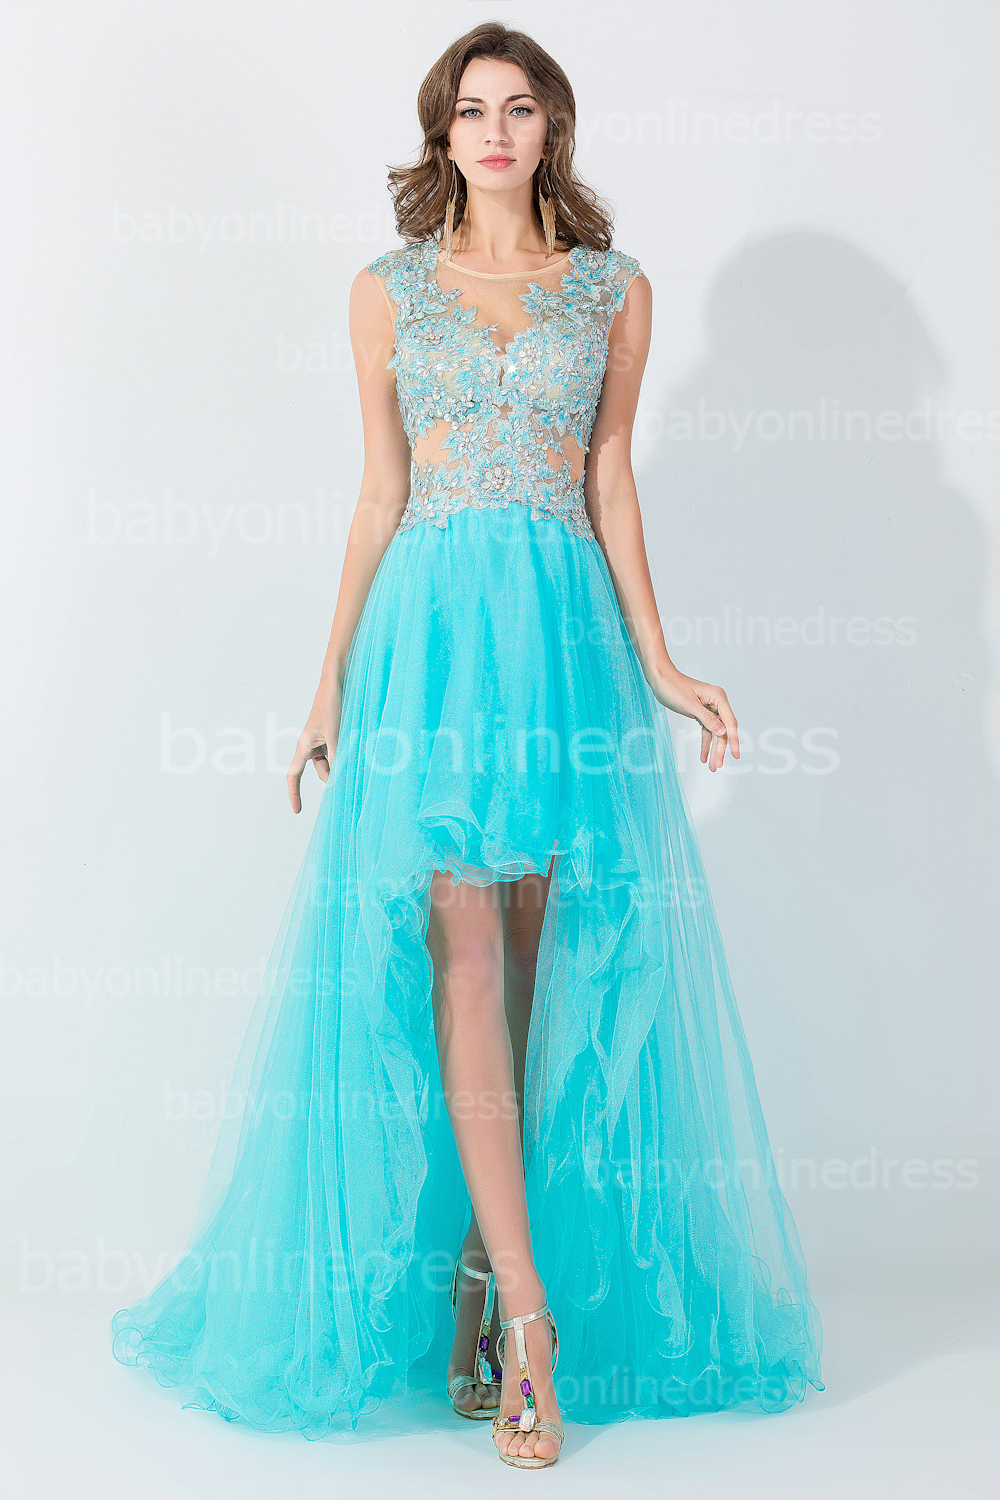 Famous Prom Dress Greenville Sc Image Collection - Wedding Dress ...